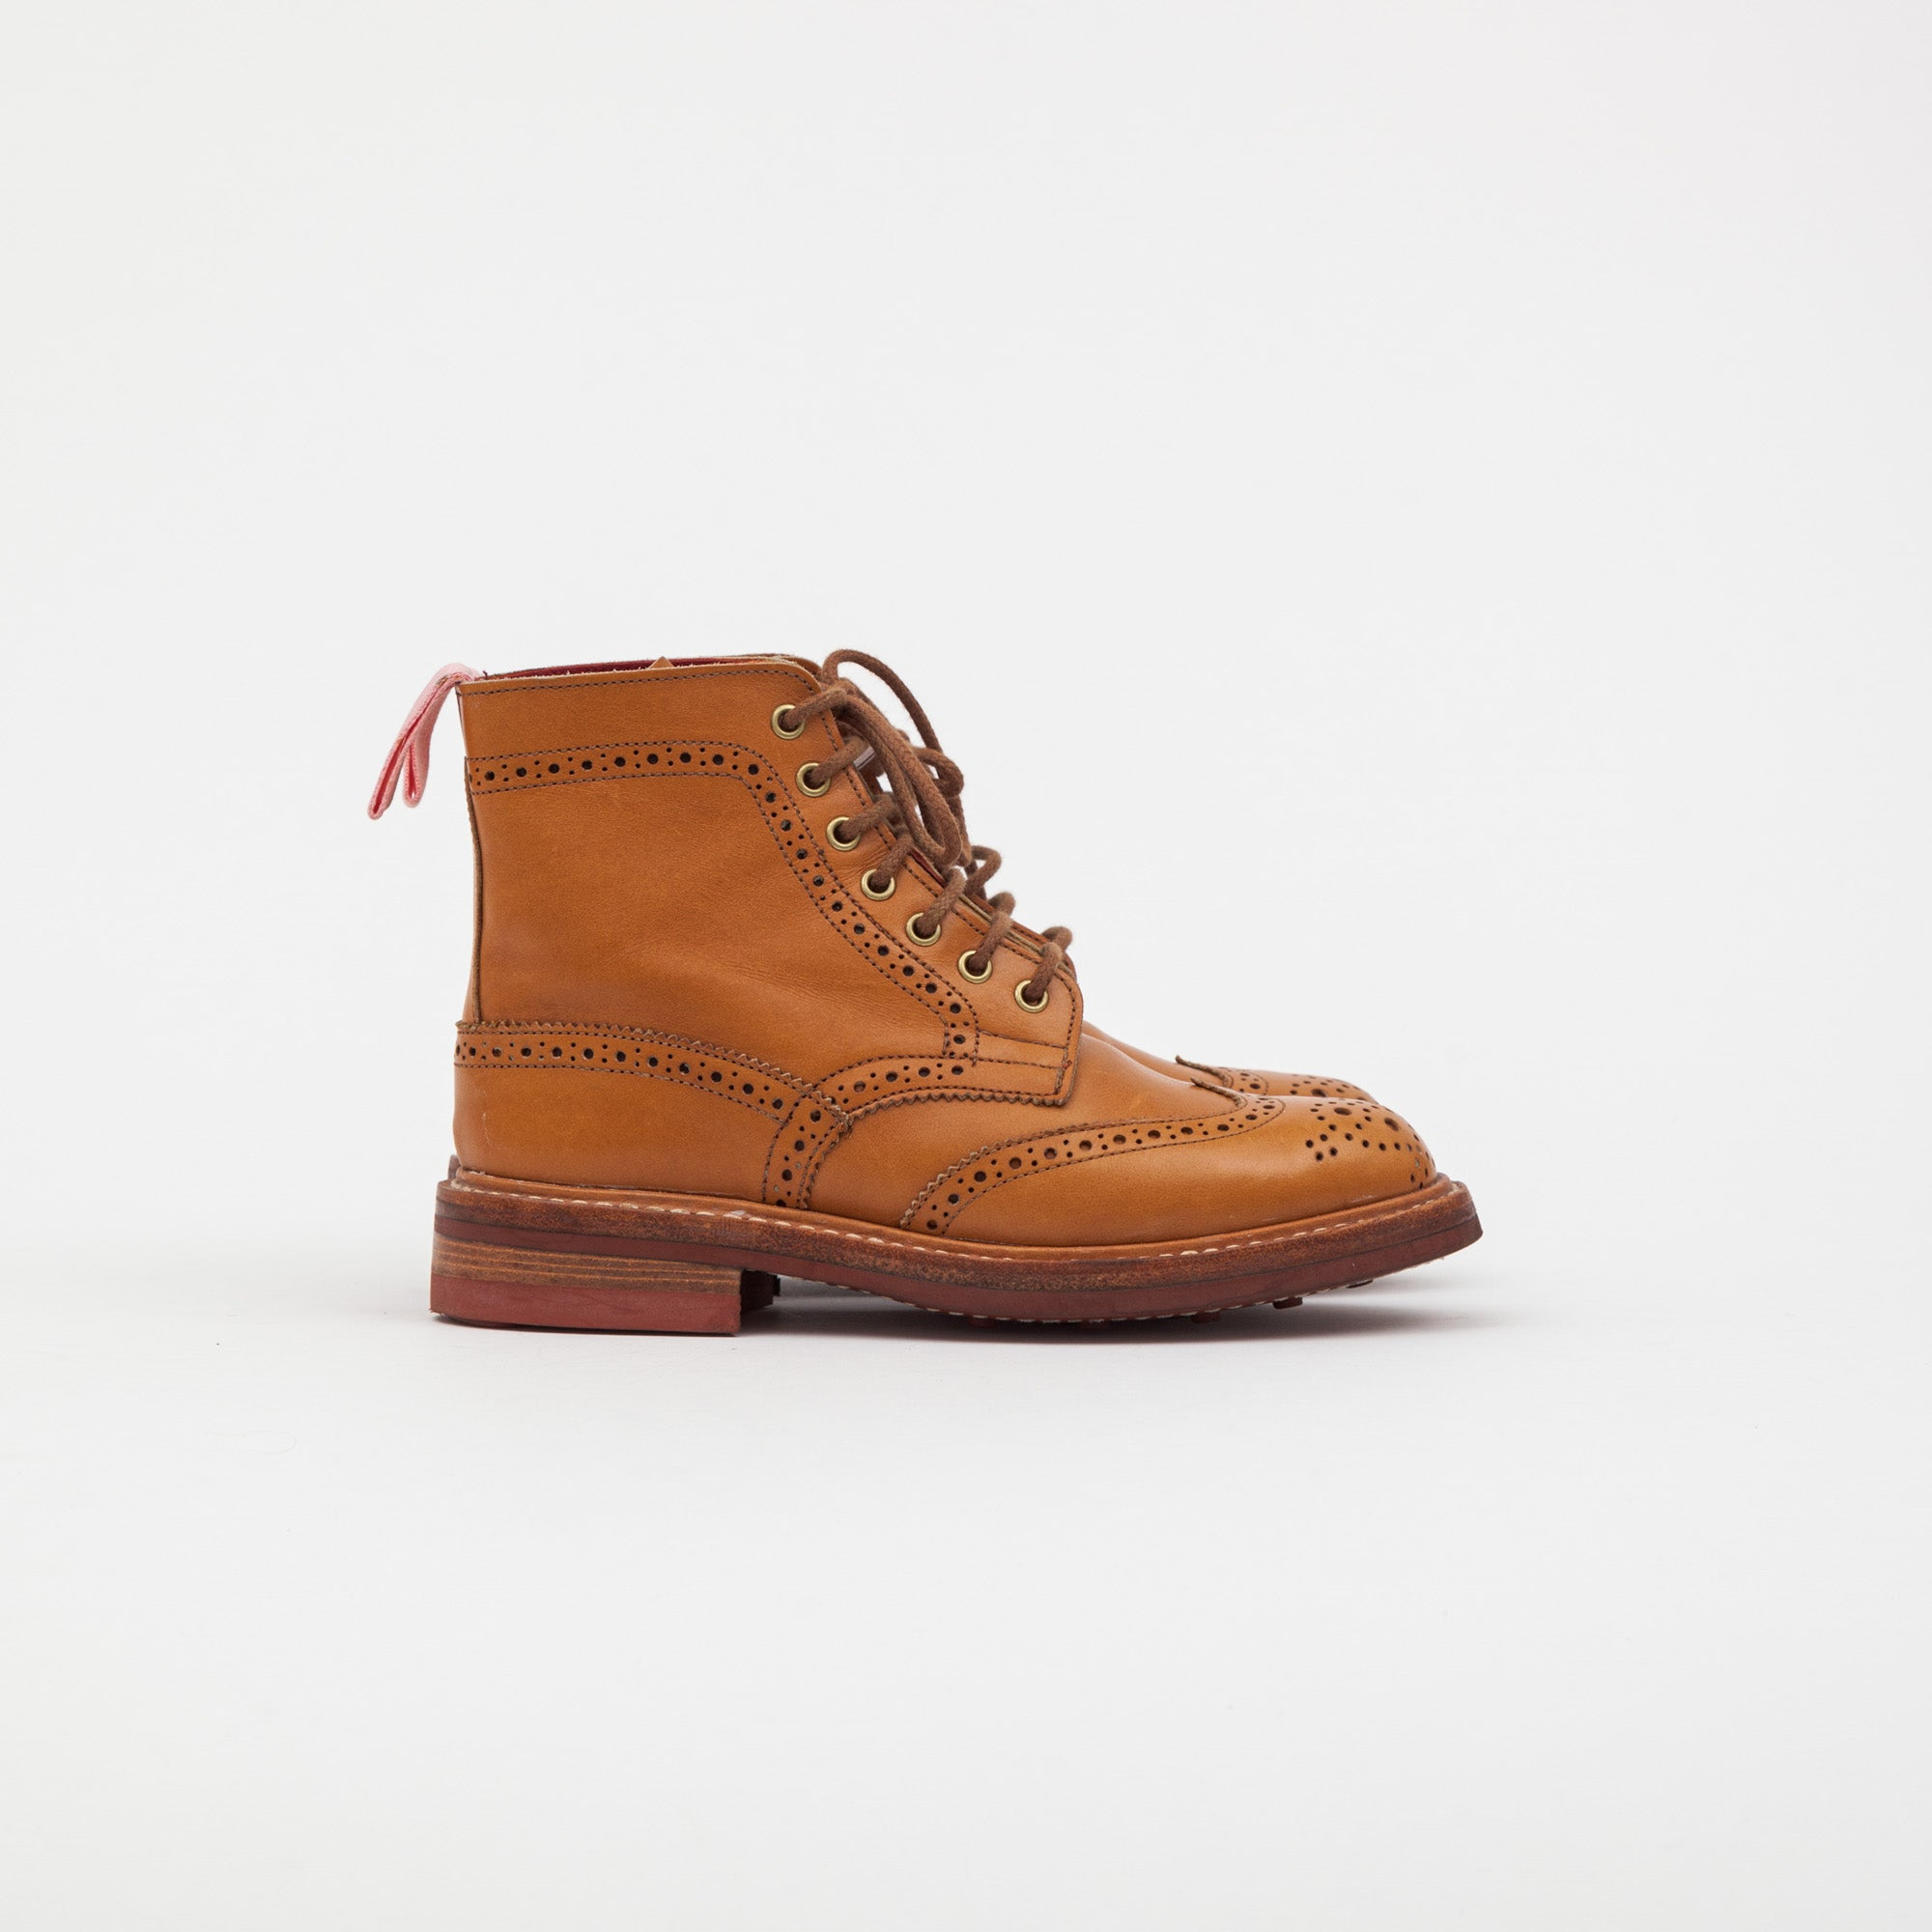 Tricker's Ladies Stow brogue Derby Boots